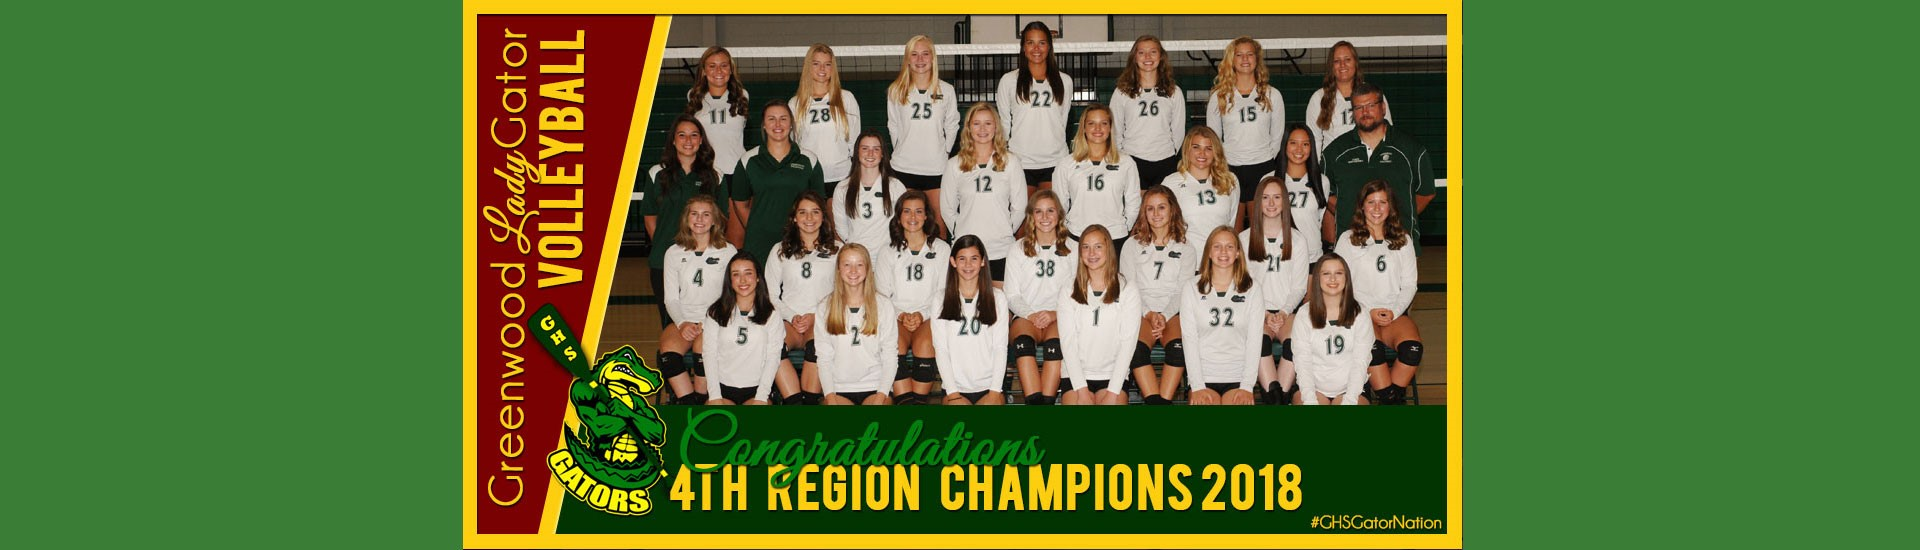 volleyball 4th Region champions